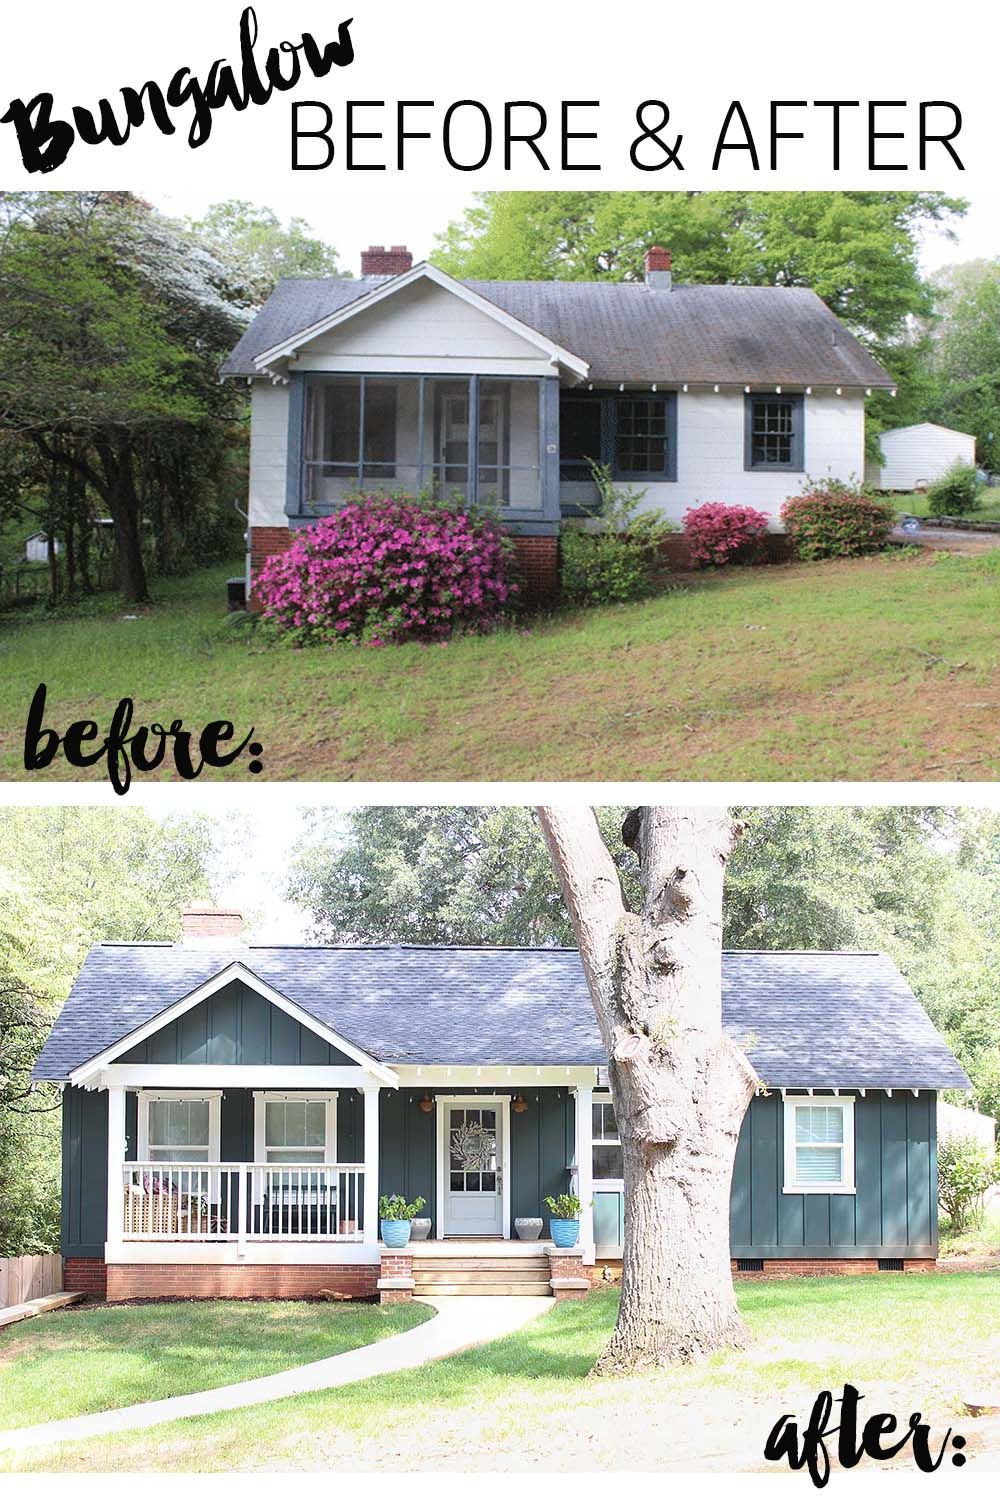 Our Bungalow Exterior Before & After